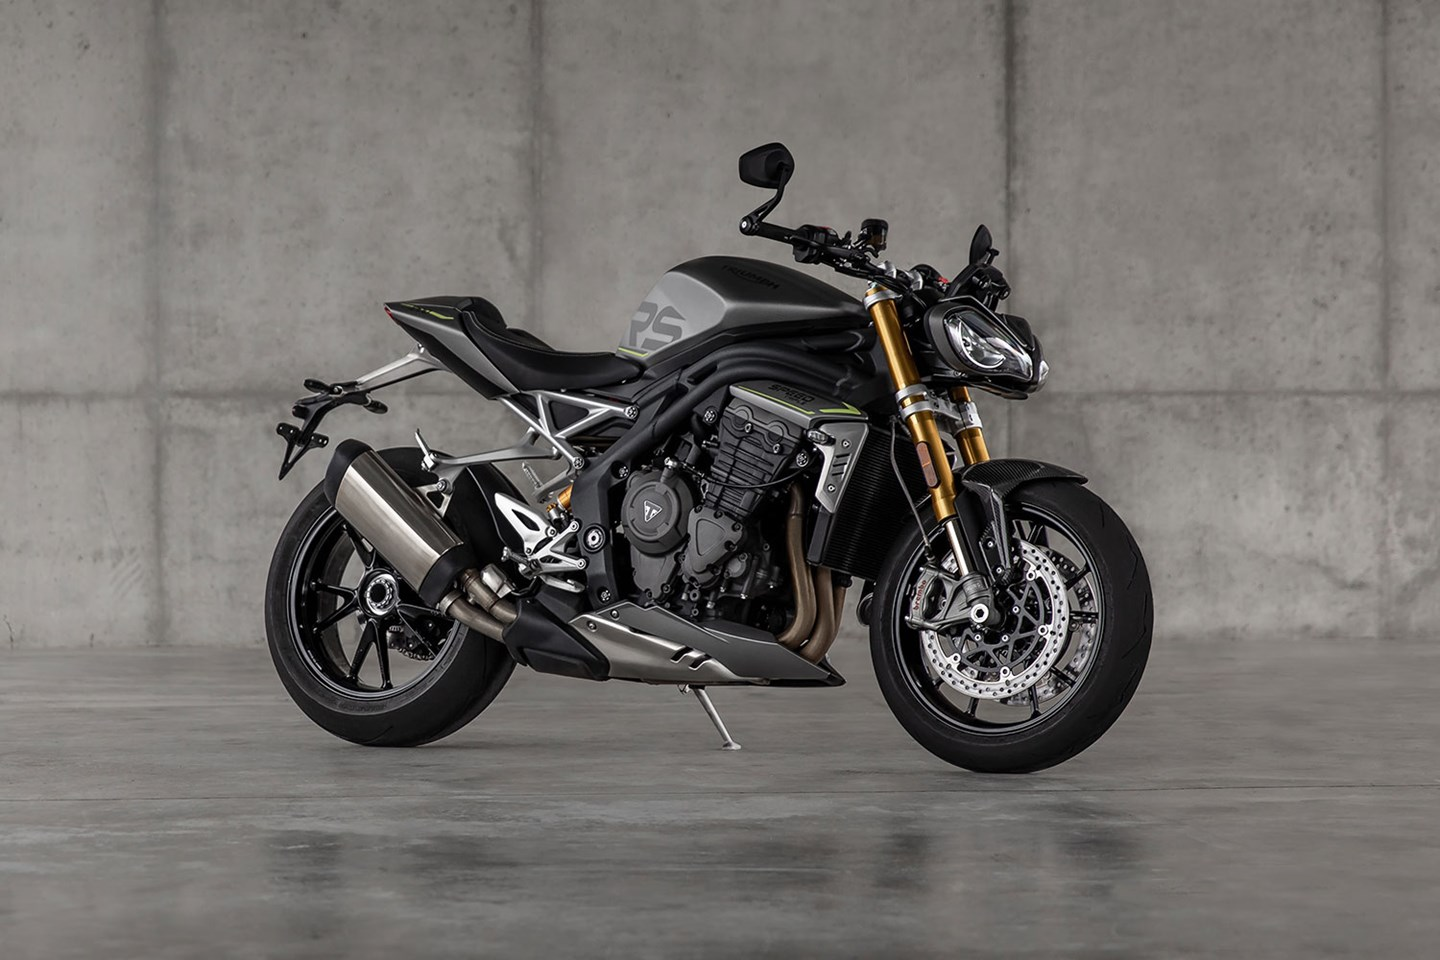 New 2021 Triumph Speed Triple 1200 RS full reveal and